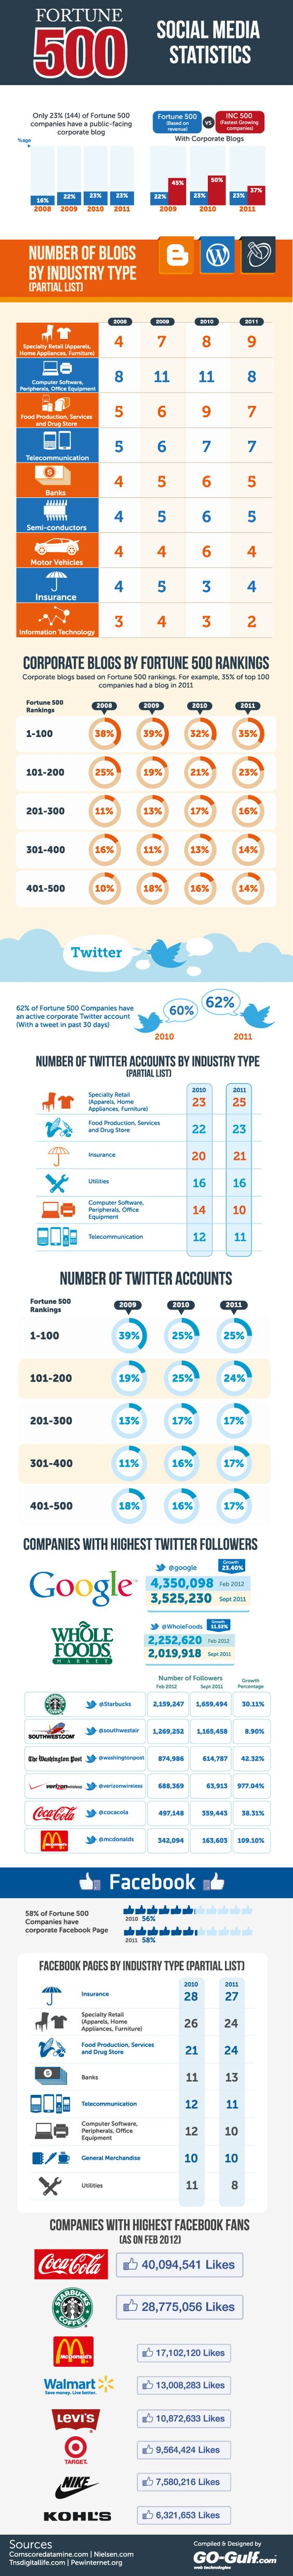 TIL More Fortune 500 Companies are on Twitter than Facebook